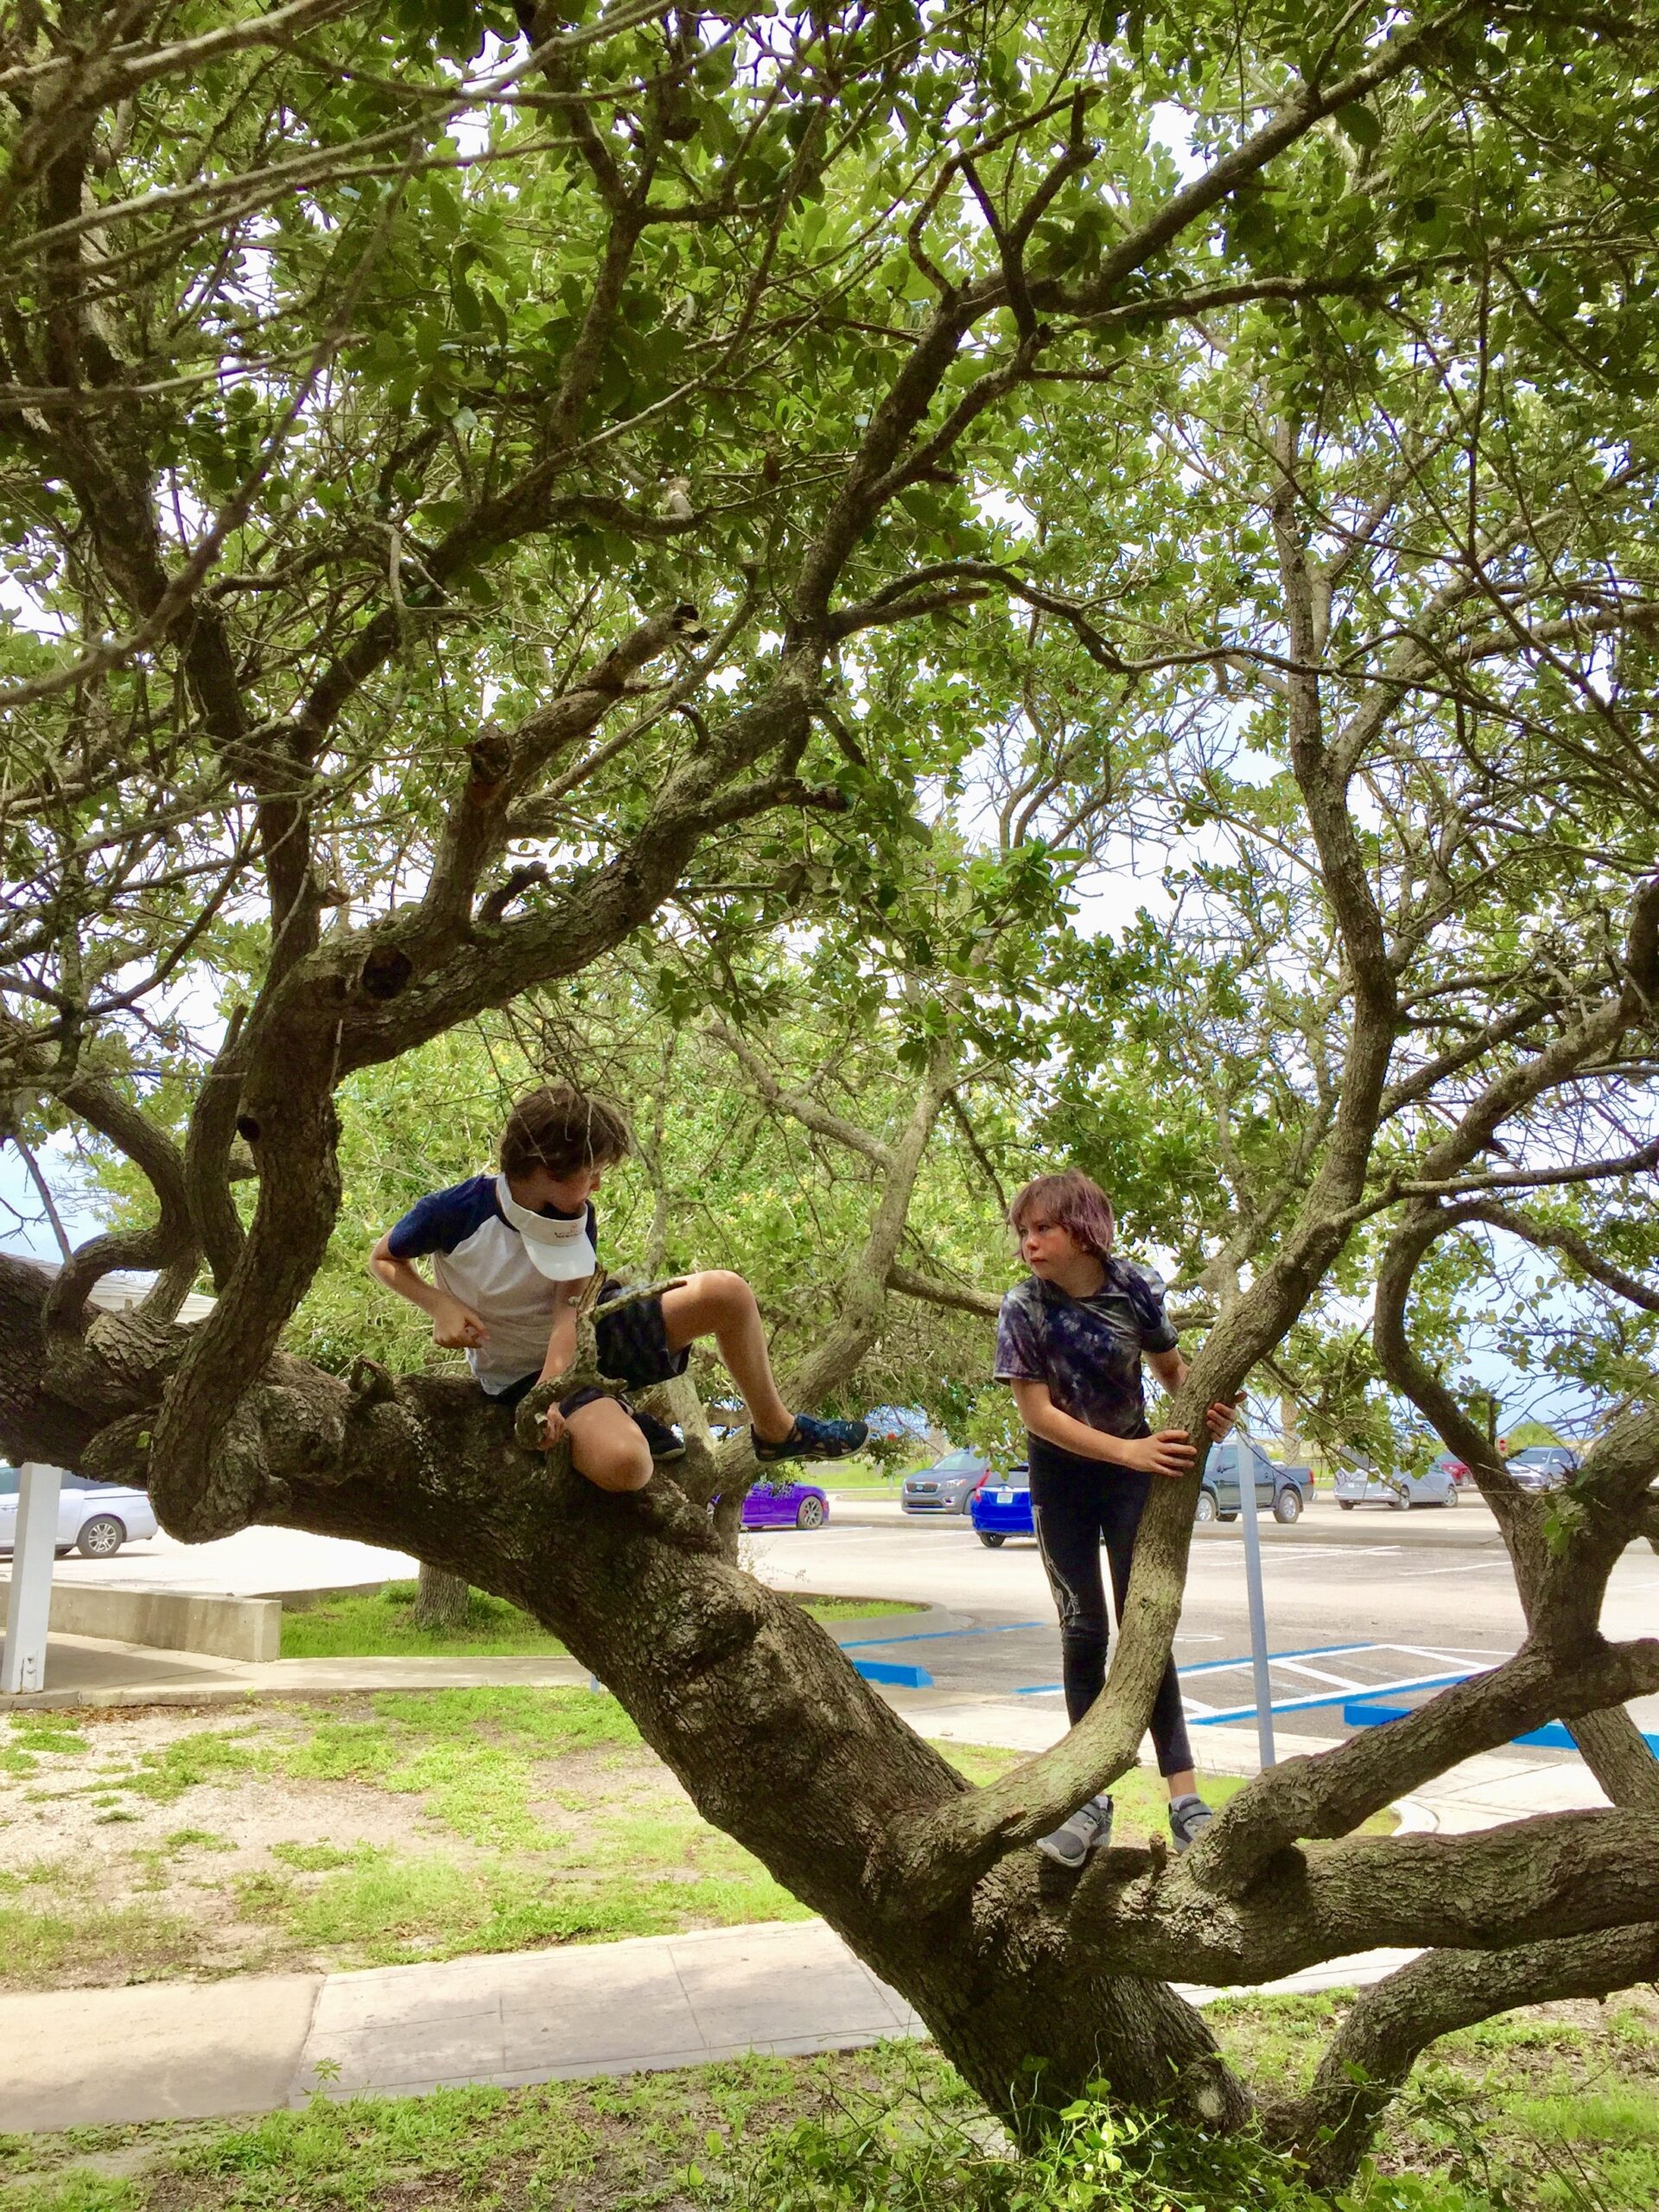 St. Augustine beaches even include nearby trees of many branches.